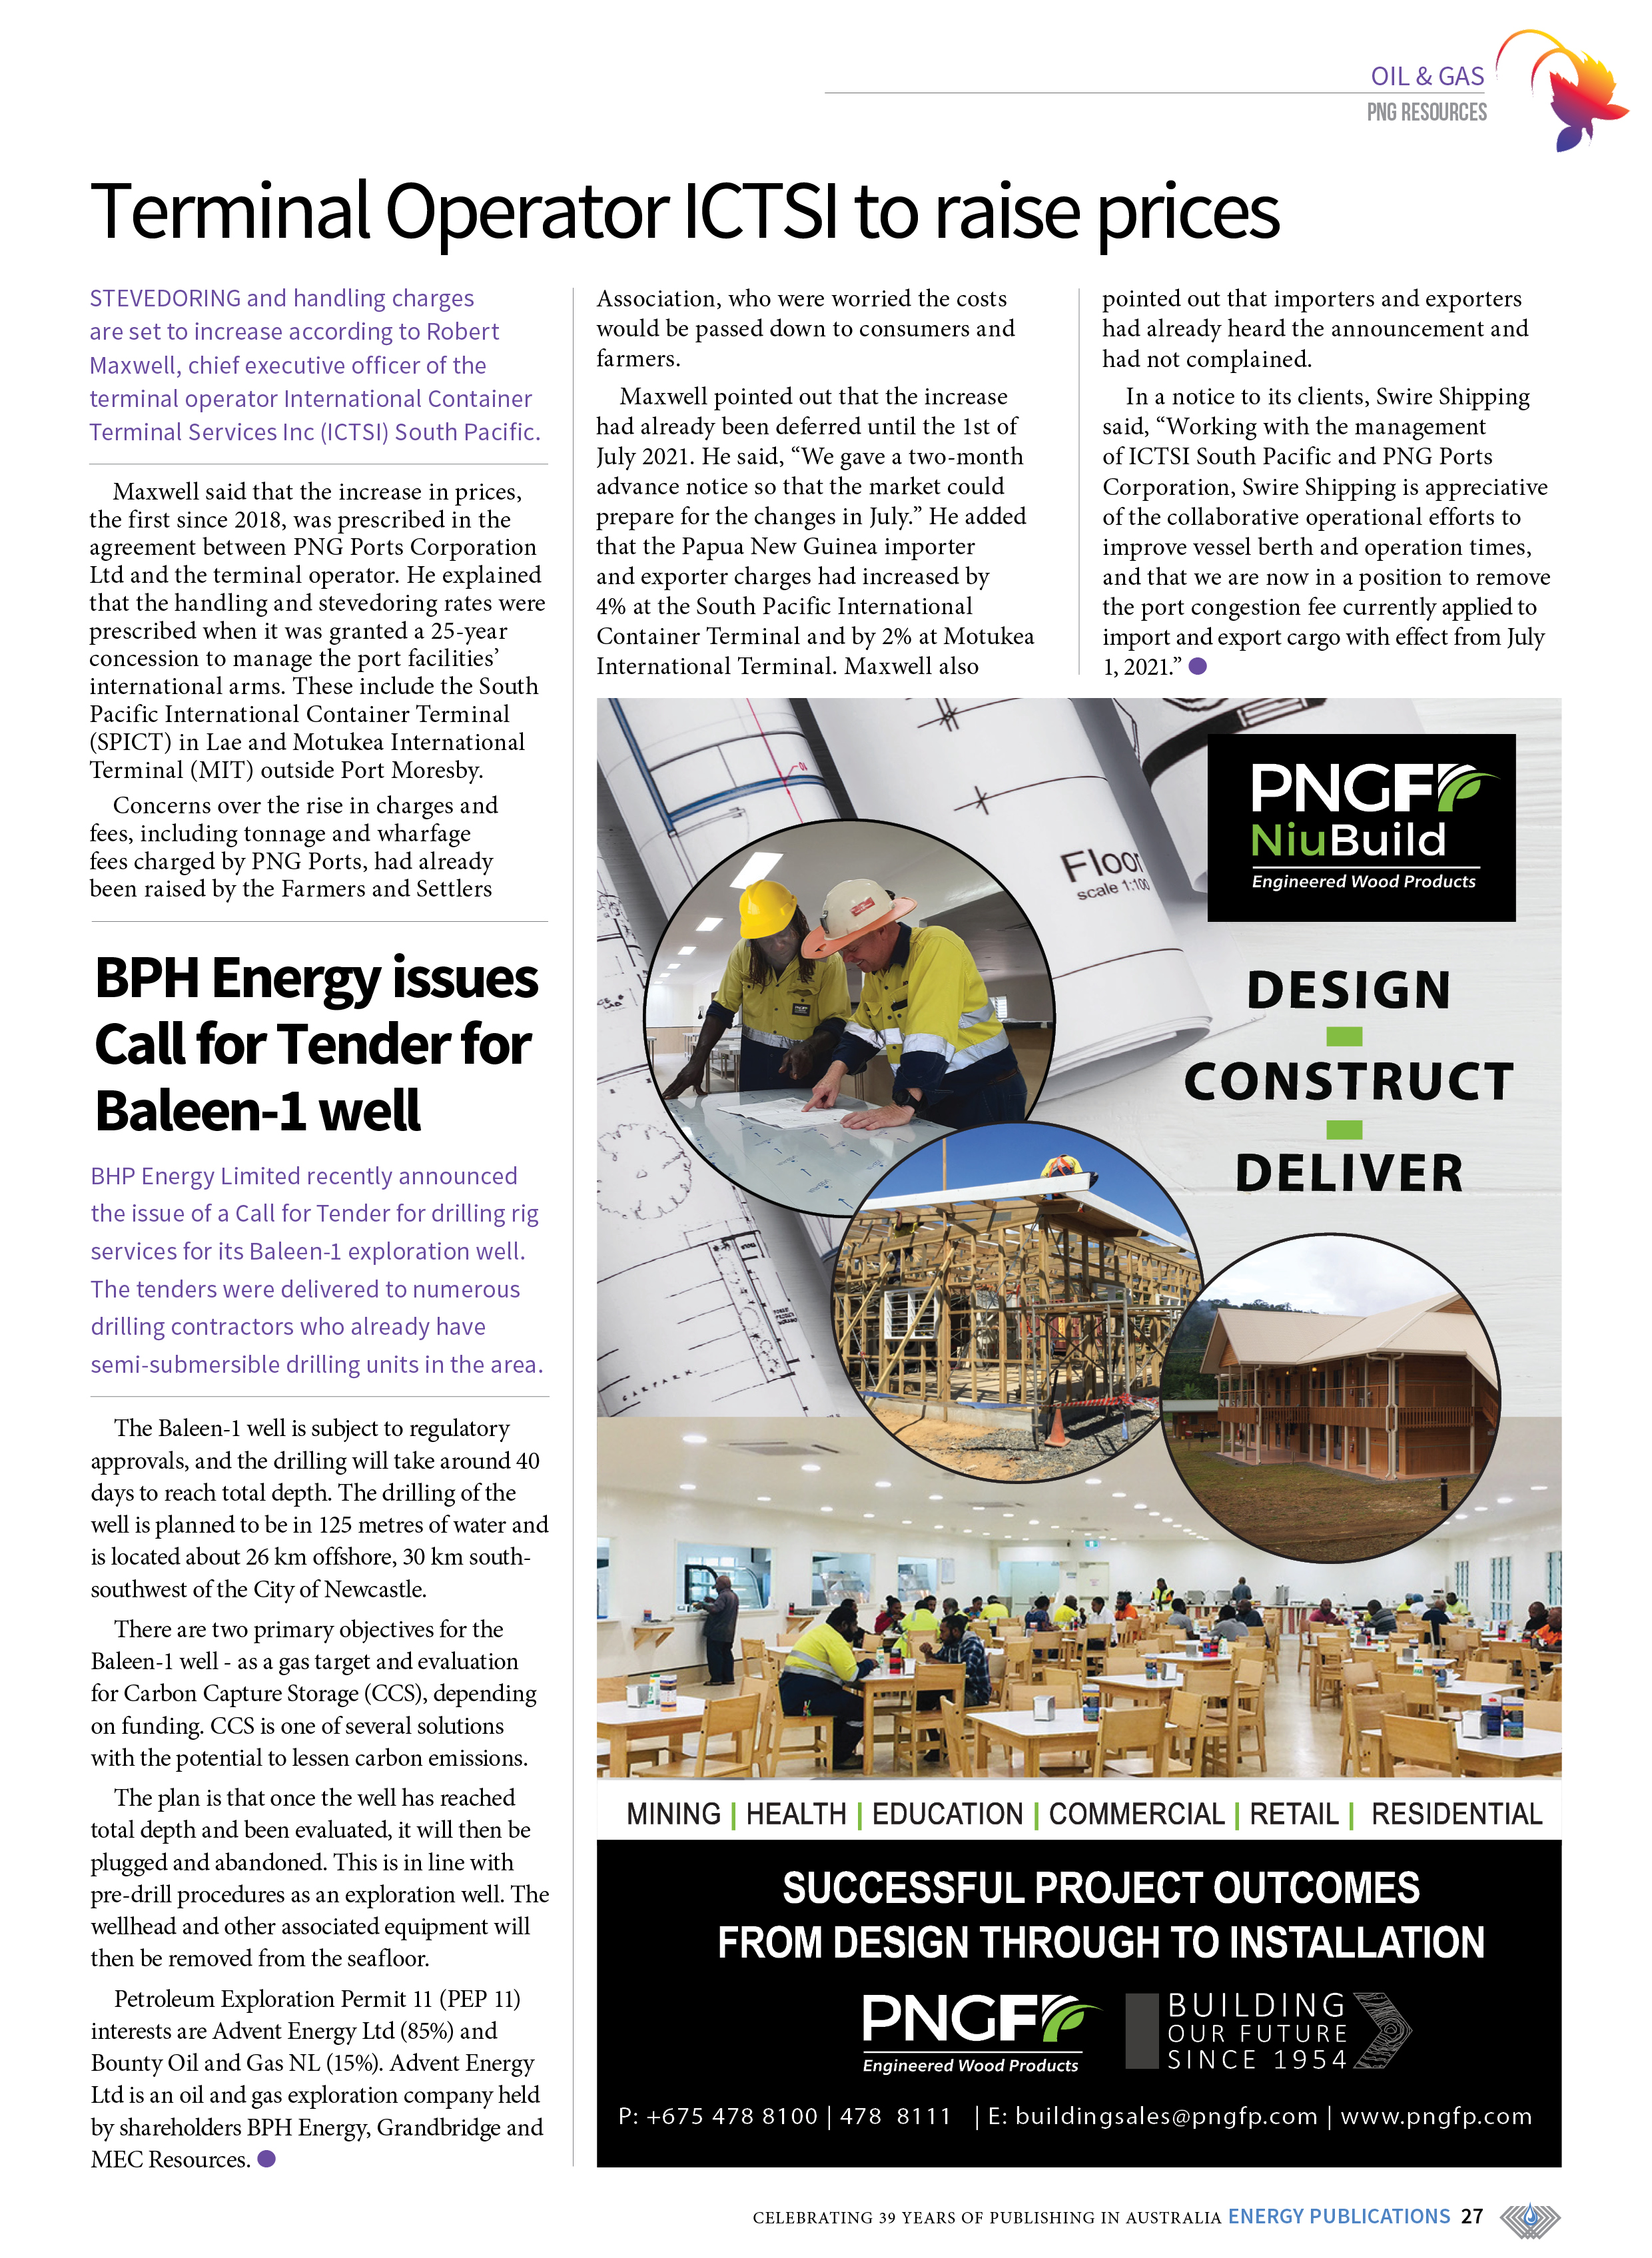 PNG Resources Q2 2021 – Page 29